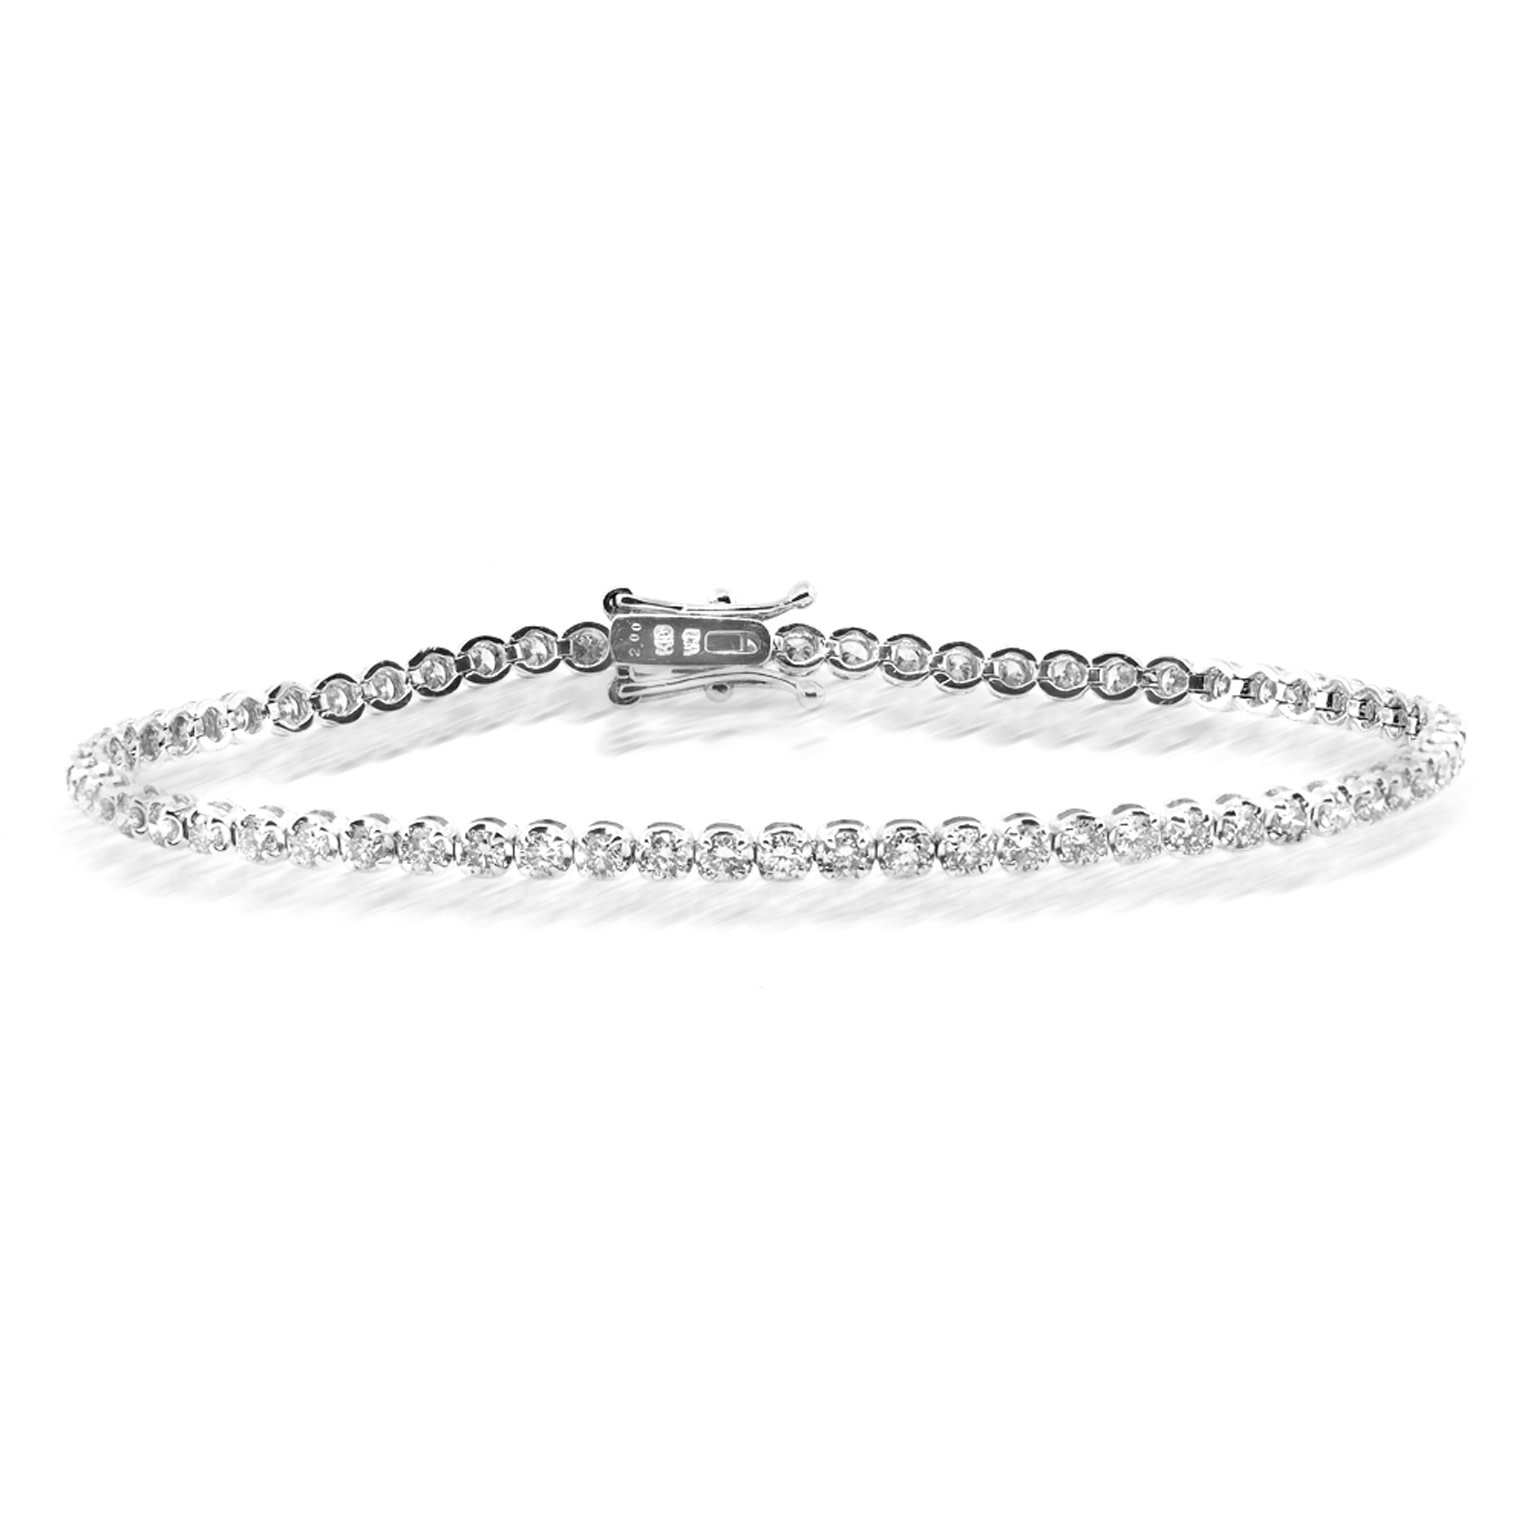 Beverley K Collection Diamond Tennis Bracelet